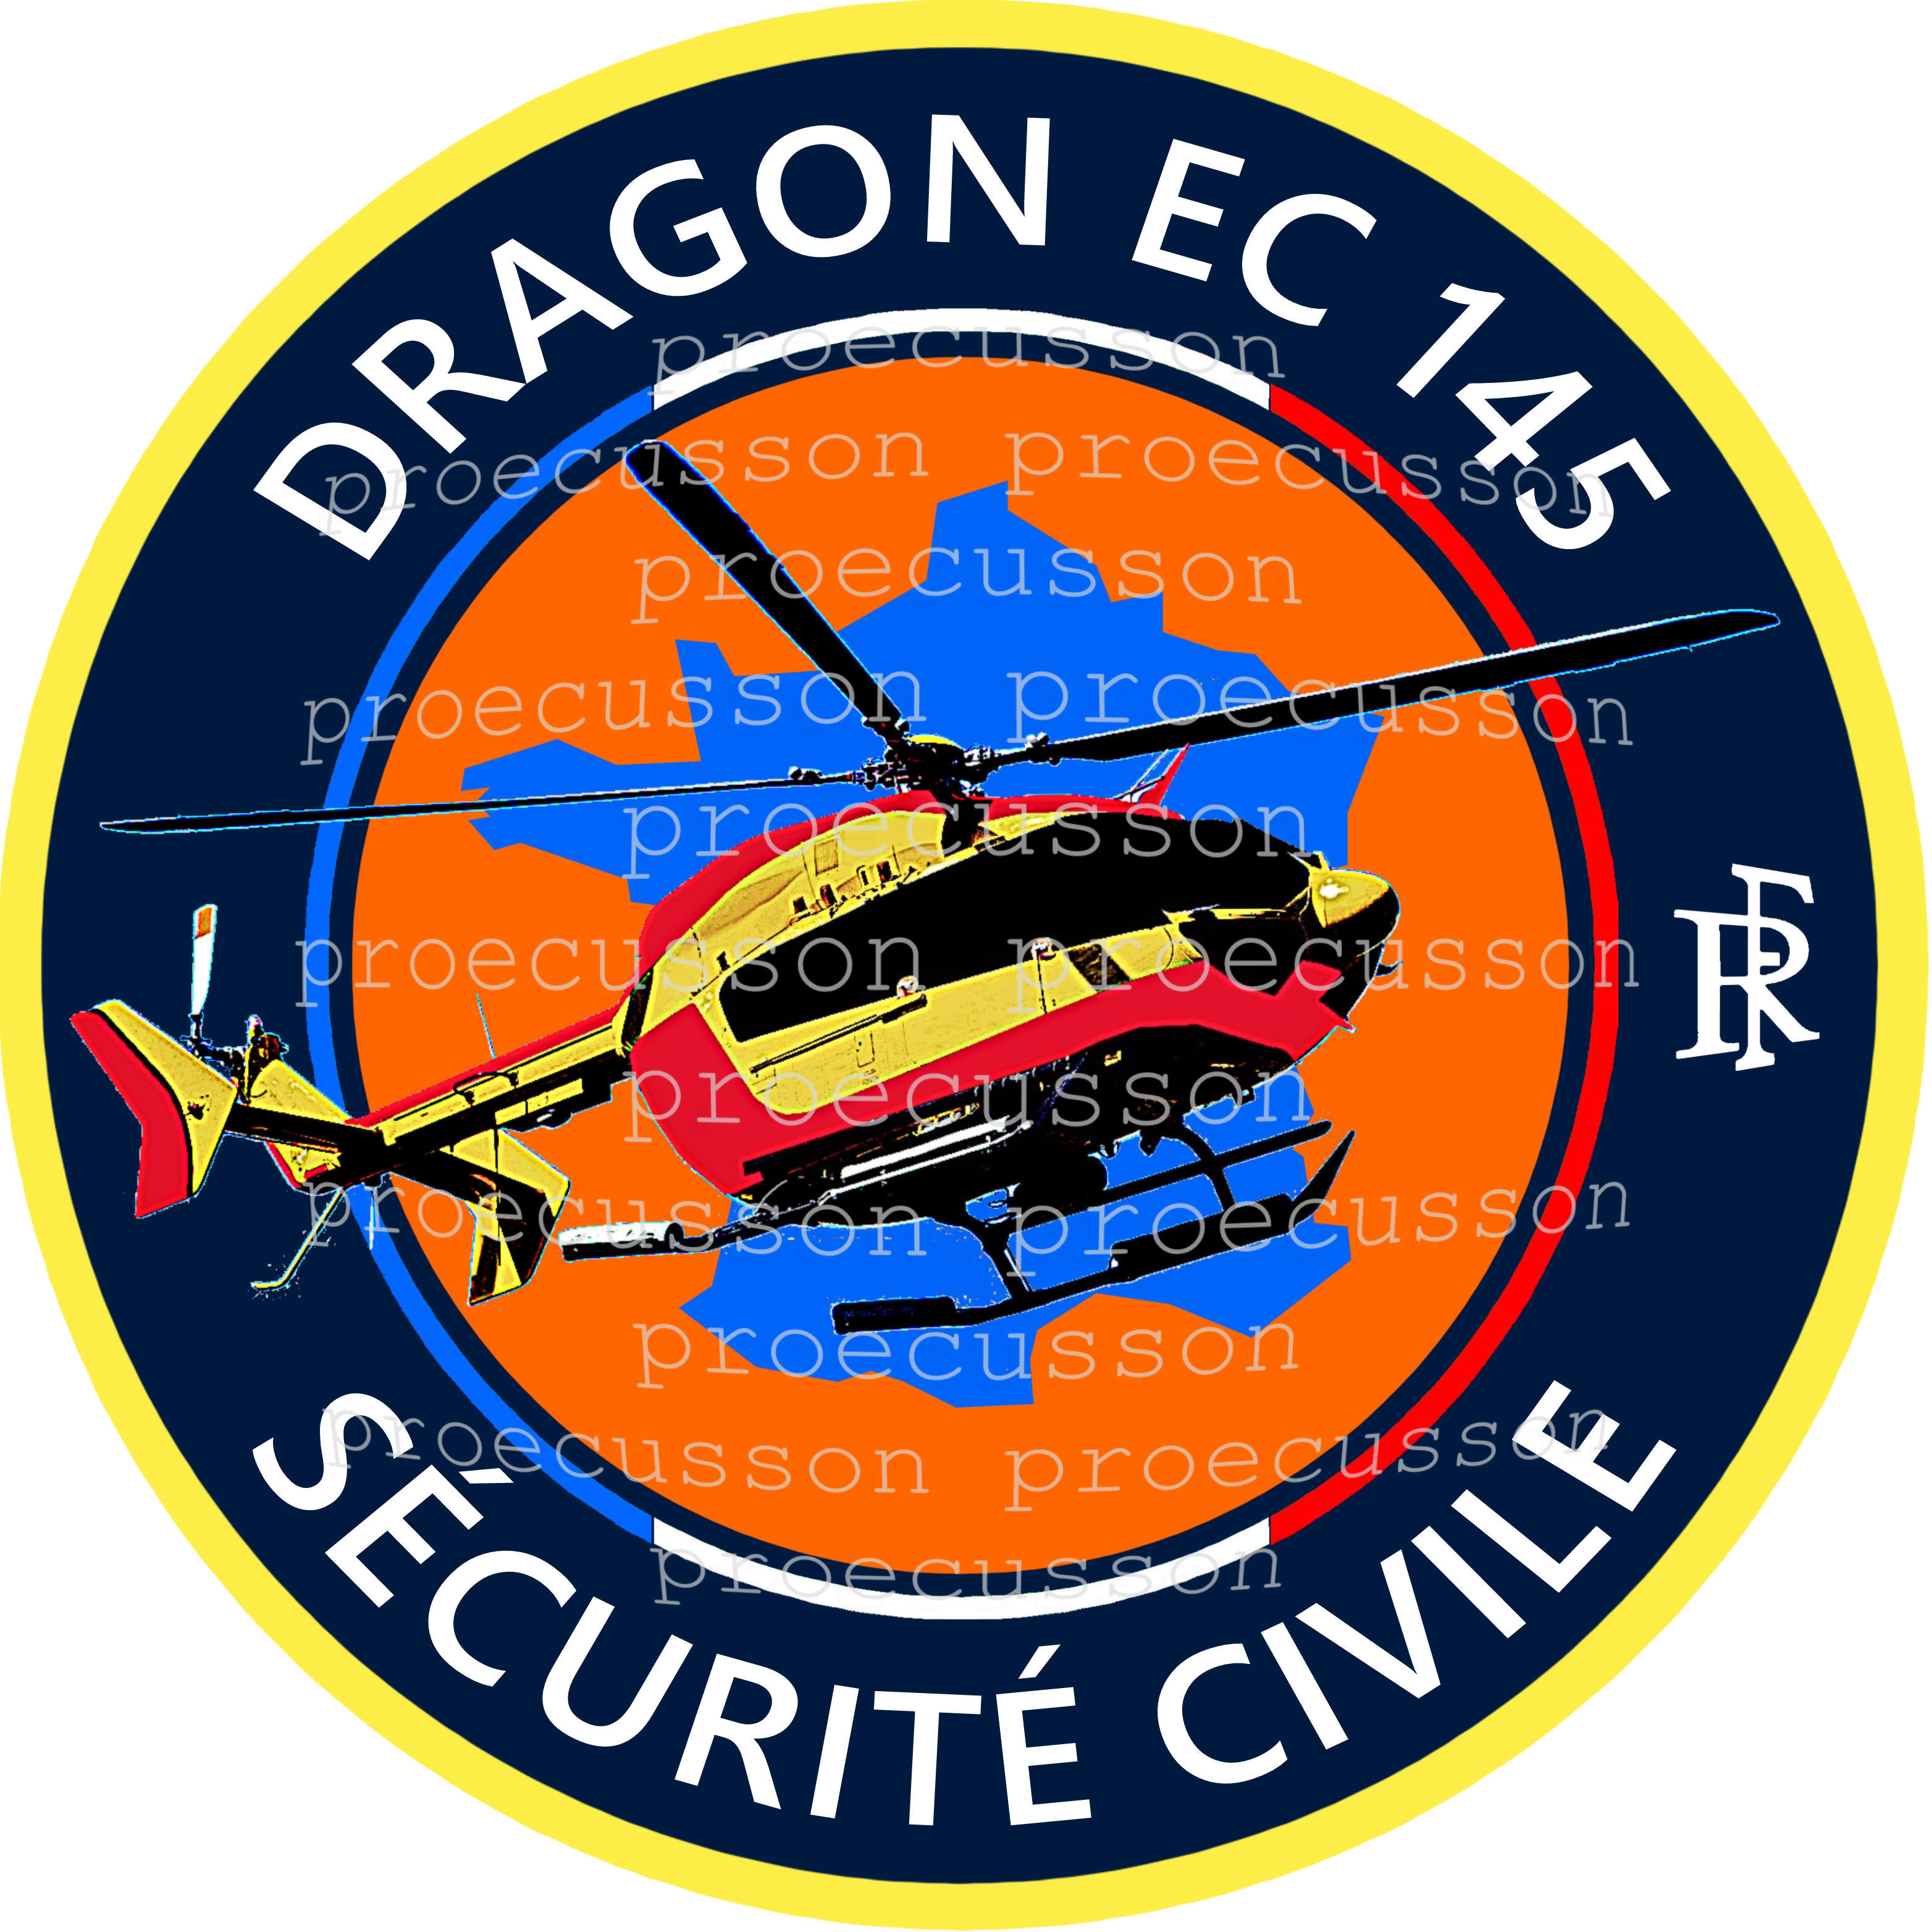 DRAGON EC 145 SÉCURITÉ CIVILE